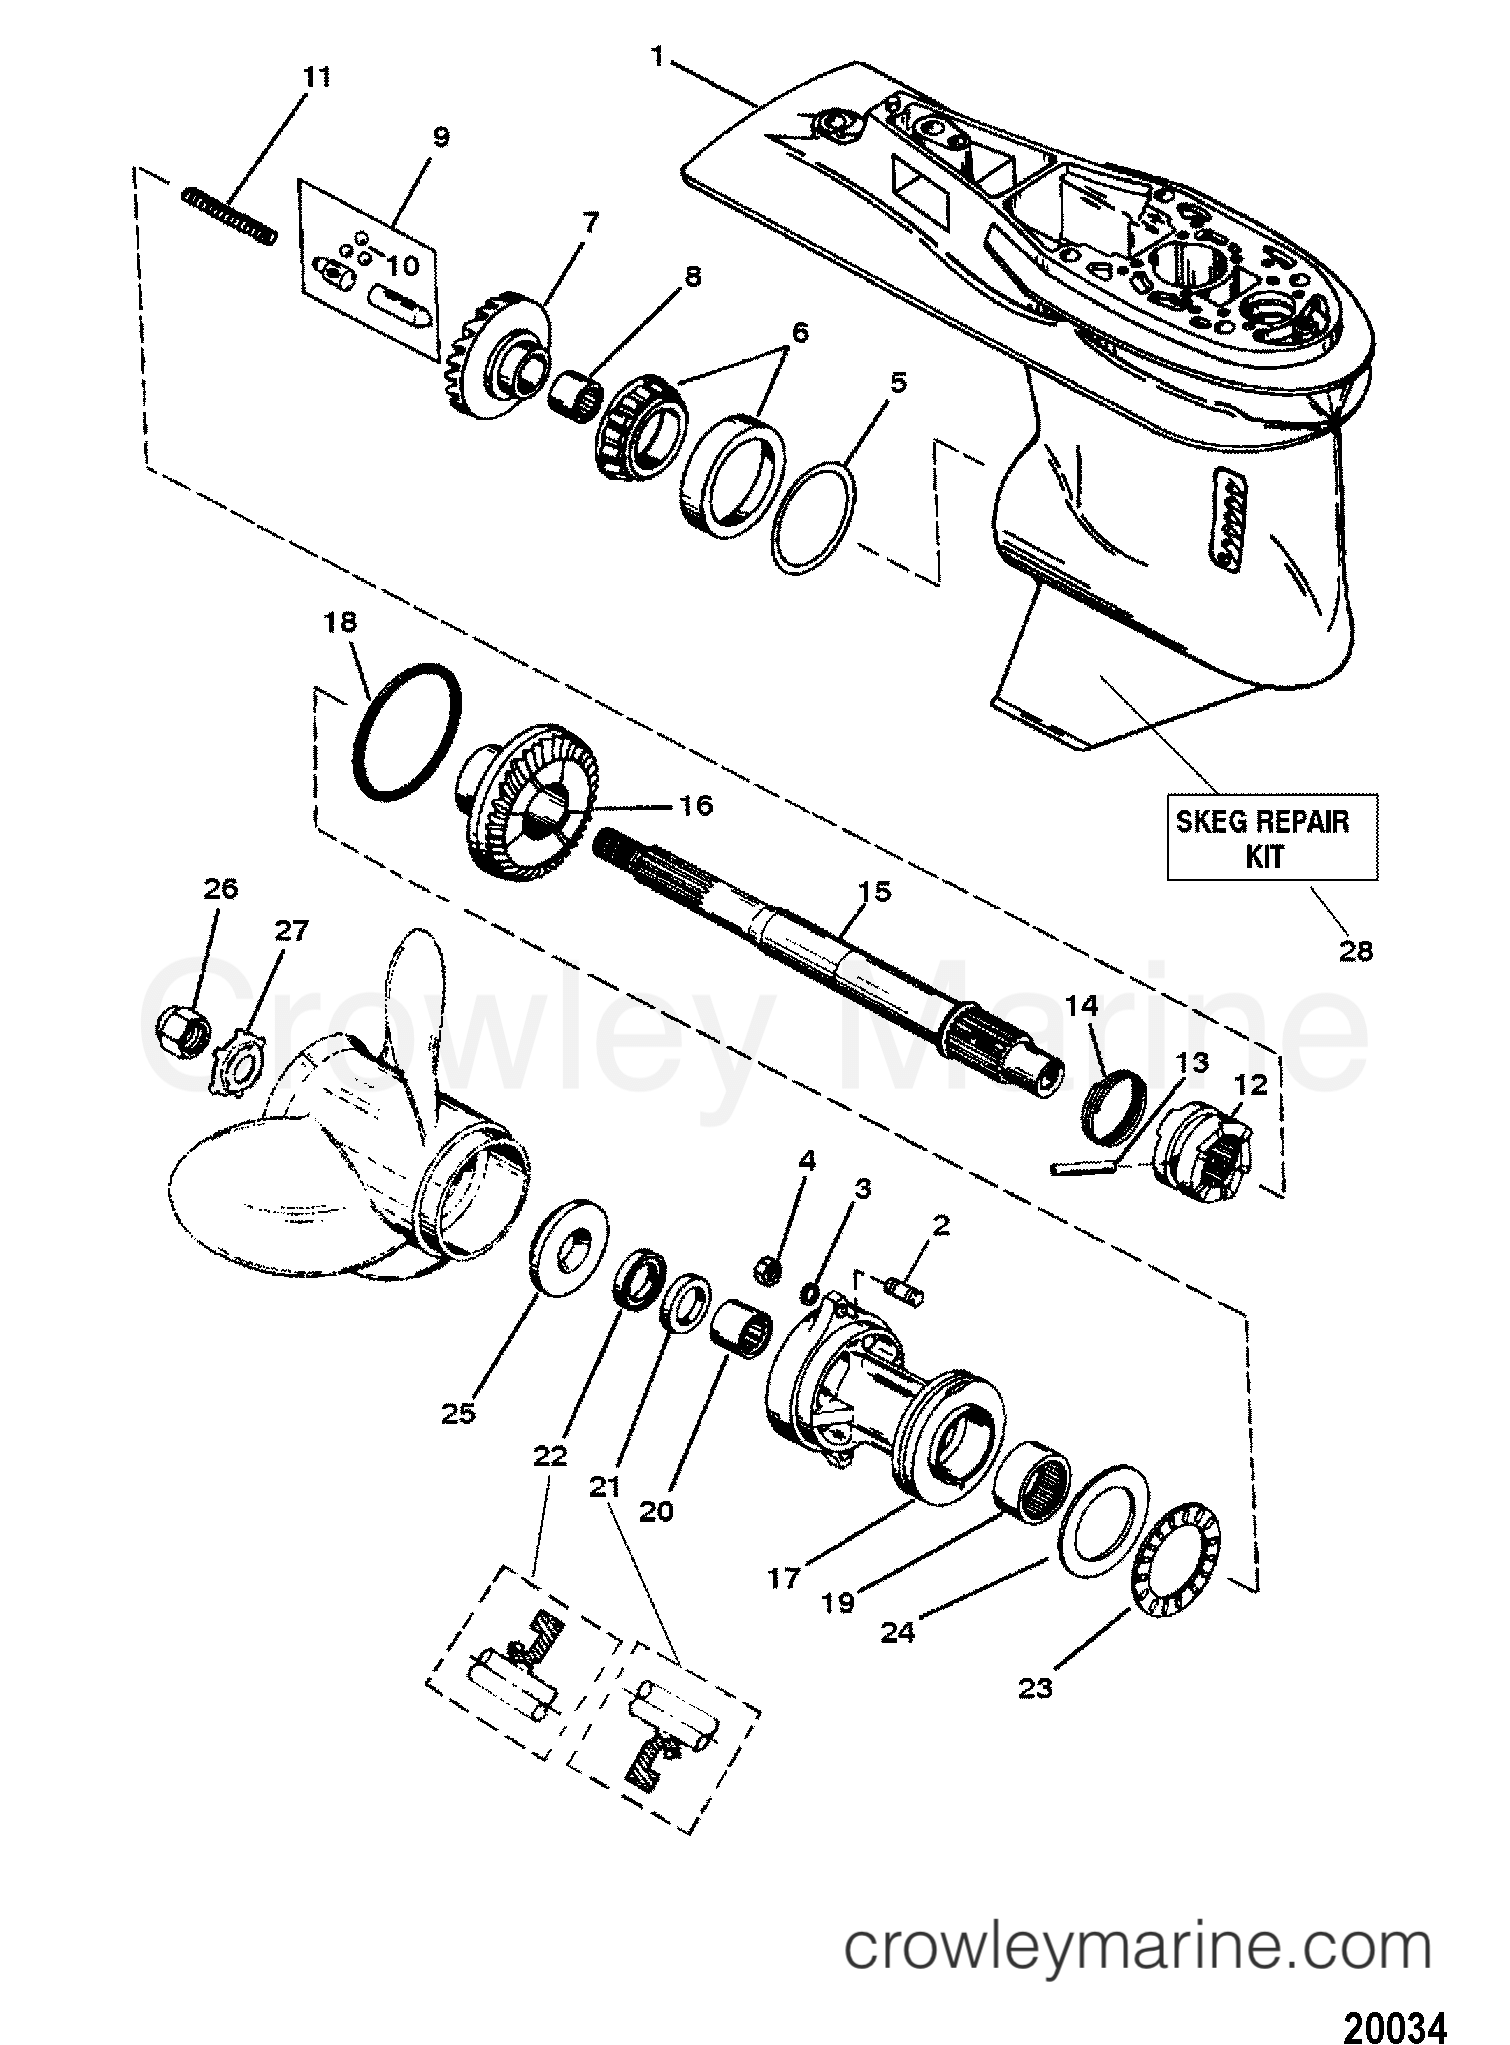 1996 Force Outboard Motor Diagram Box Wiring Evinrude Engine Gear Housing Assemblypropshaft 3 Jaw Reverse Clutch Parts Diagrams